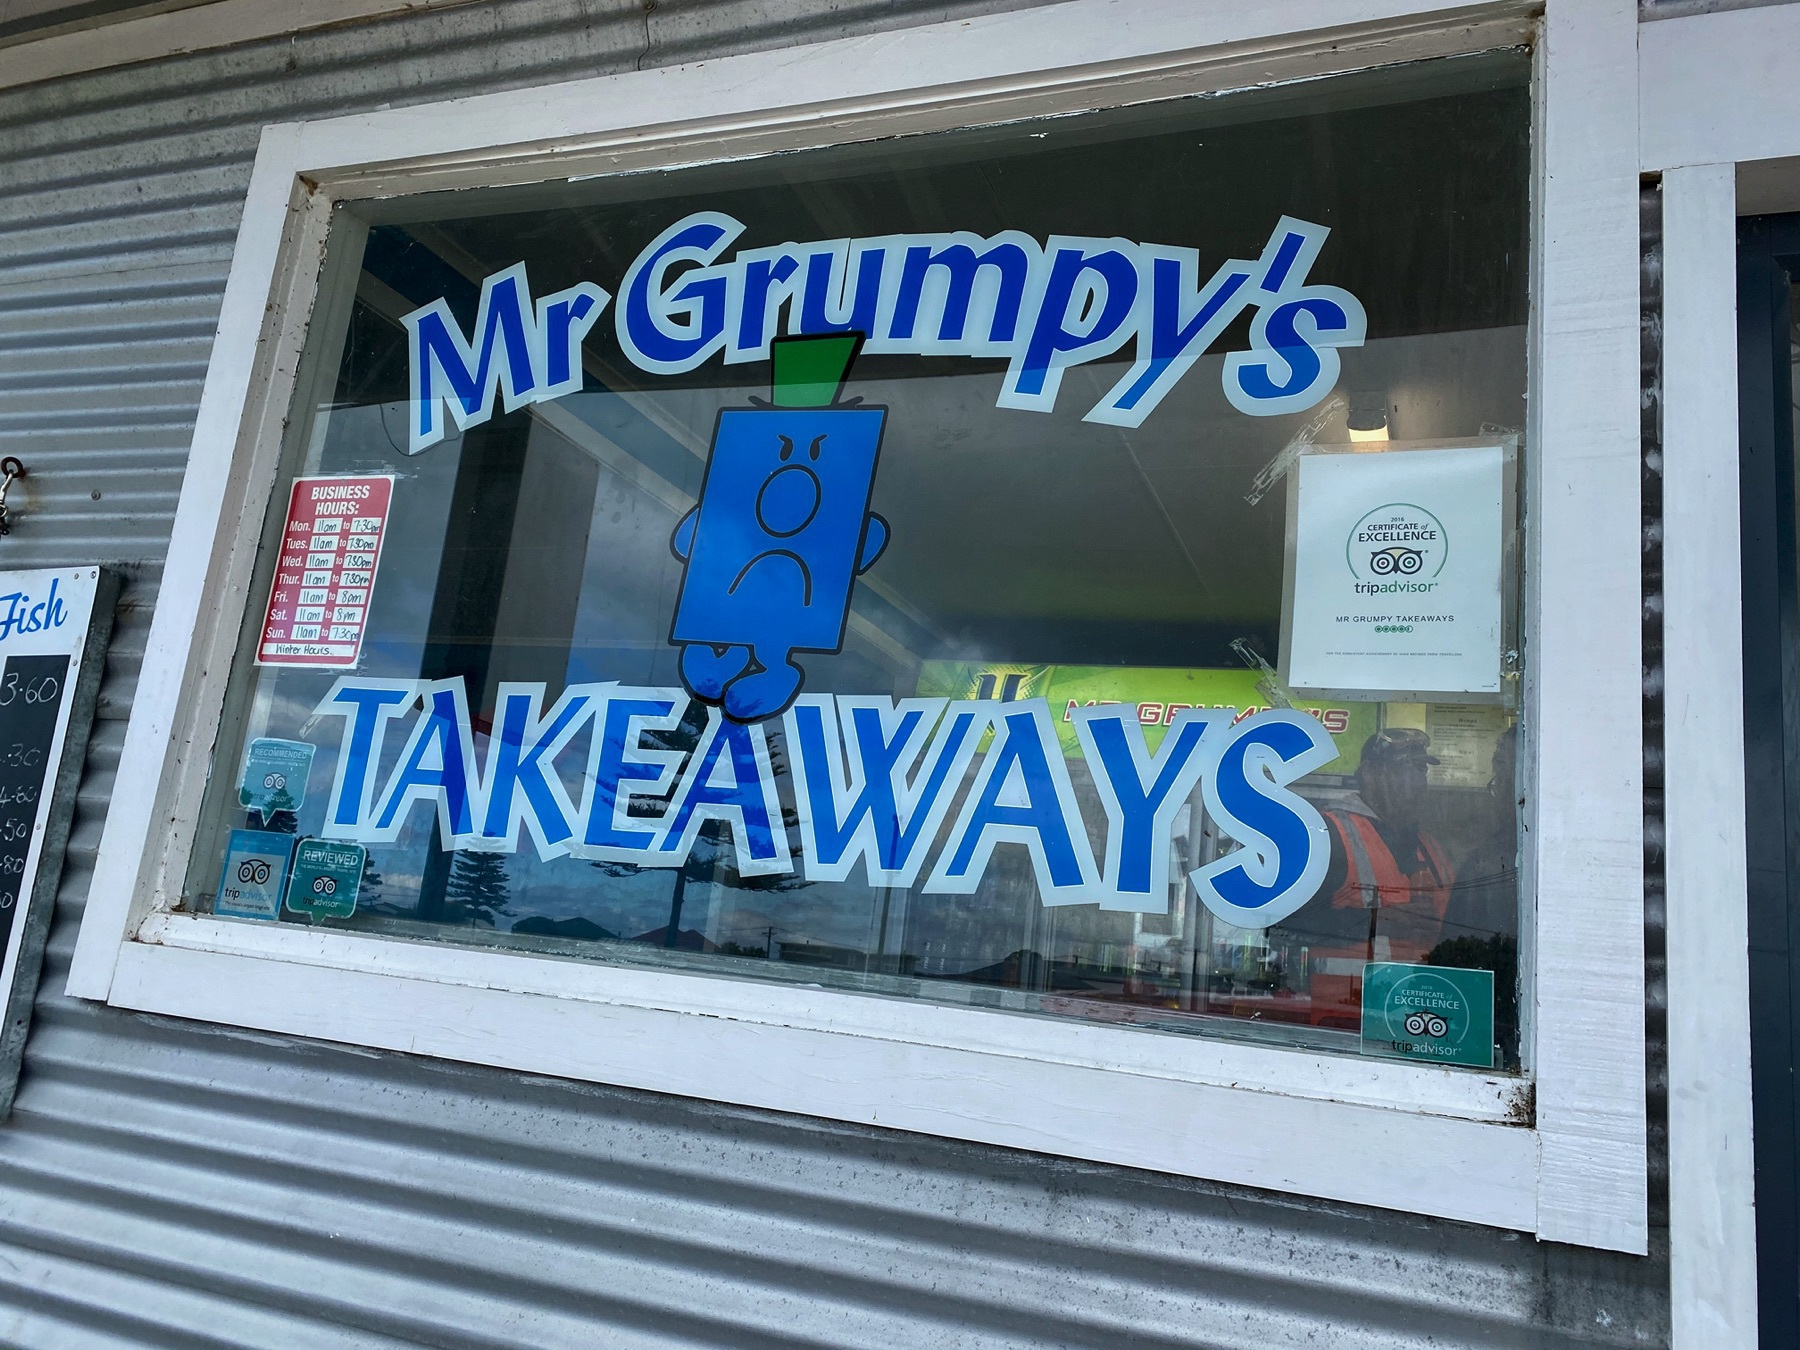 Window for Mr Grumpys takeaways.